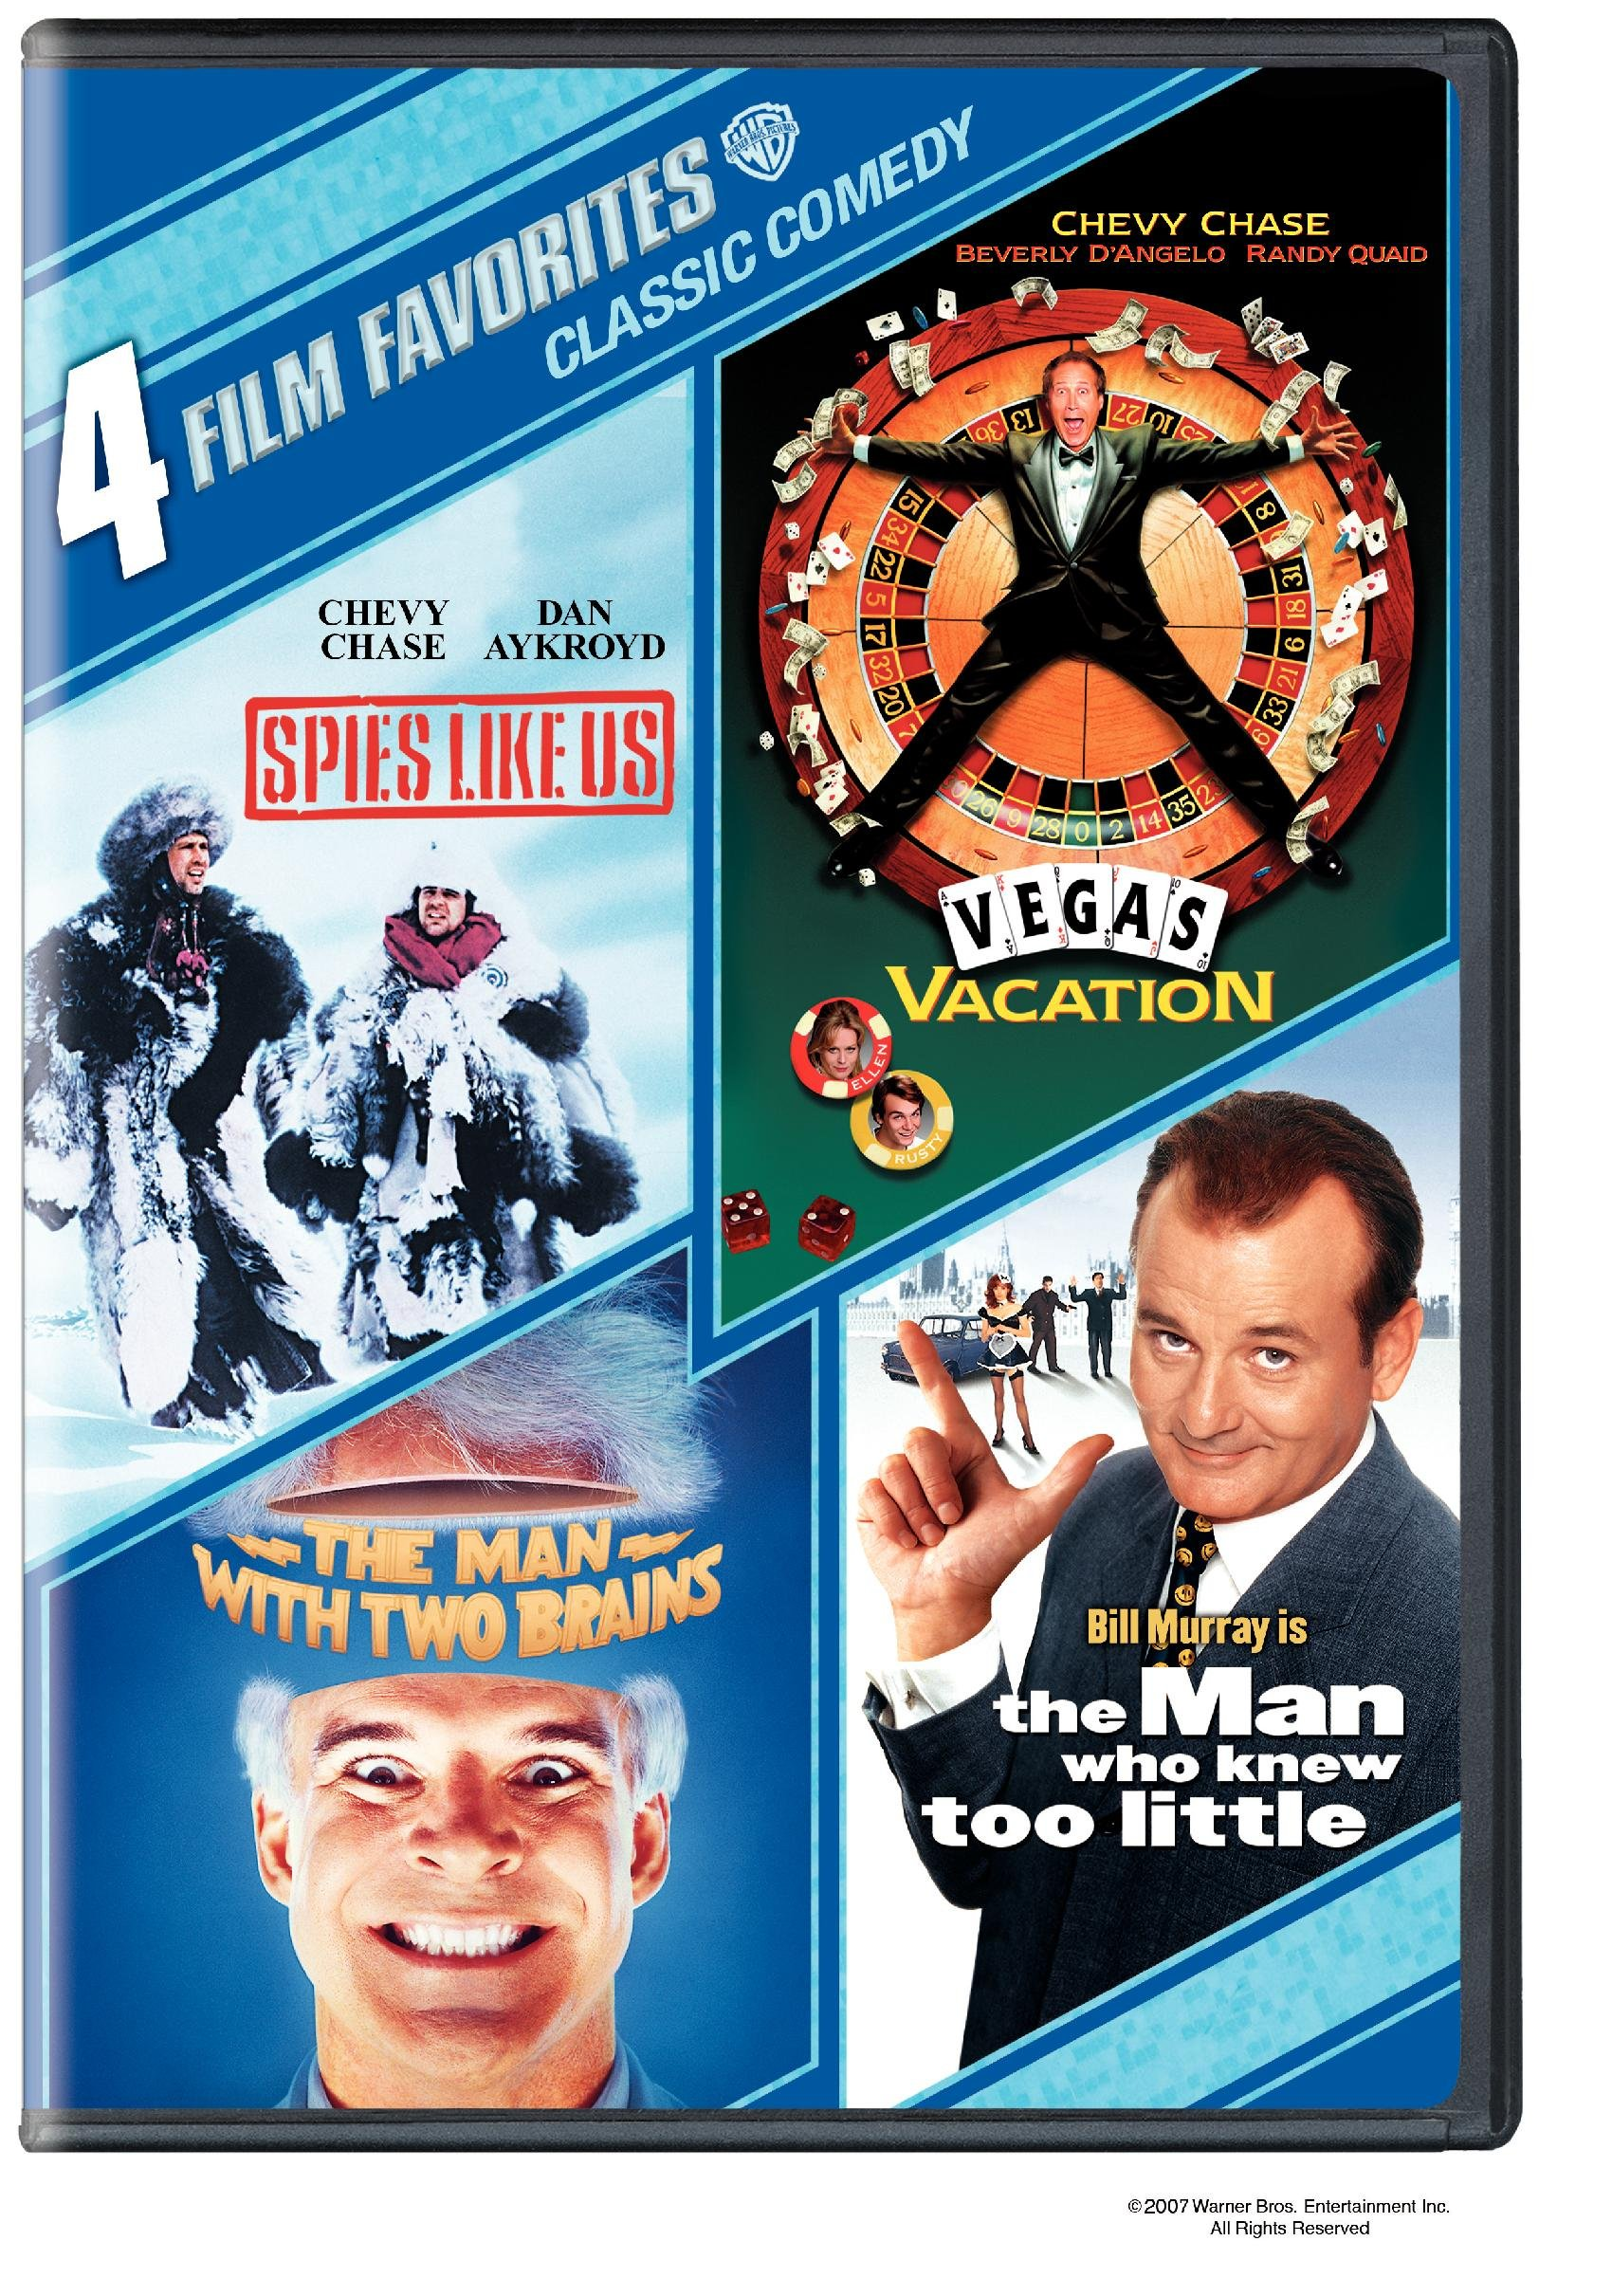 Vegas Vacation Dvd Special Features: 4 Film Favorites: Classic Comedies (The Man Who Knew Too